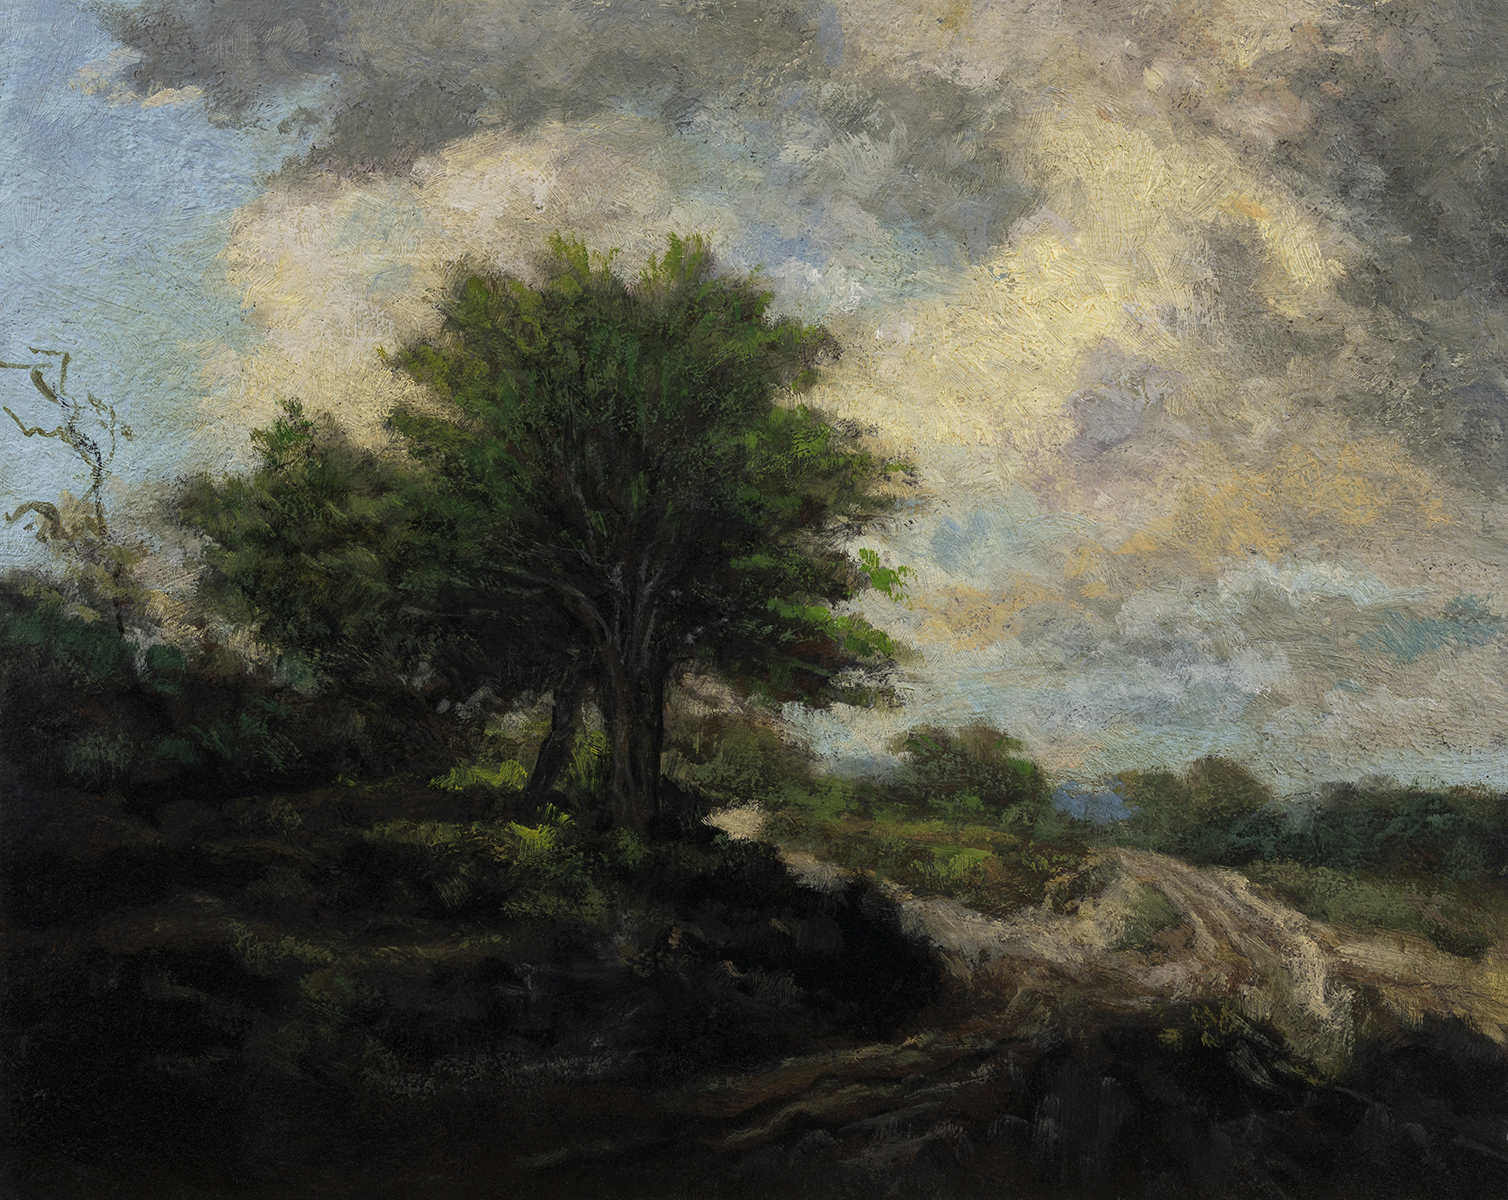 Study after Jacob van Ruisdael Landscape by M Francis McCarthy - 8x10 Oil on Wood Panel